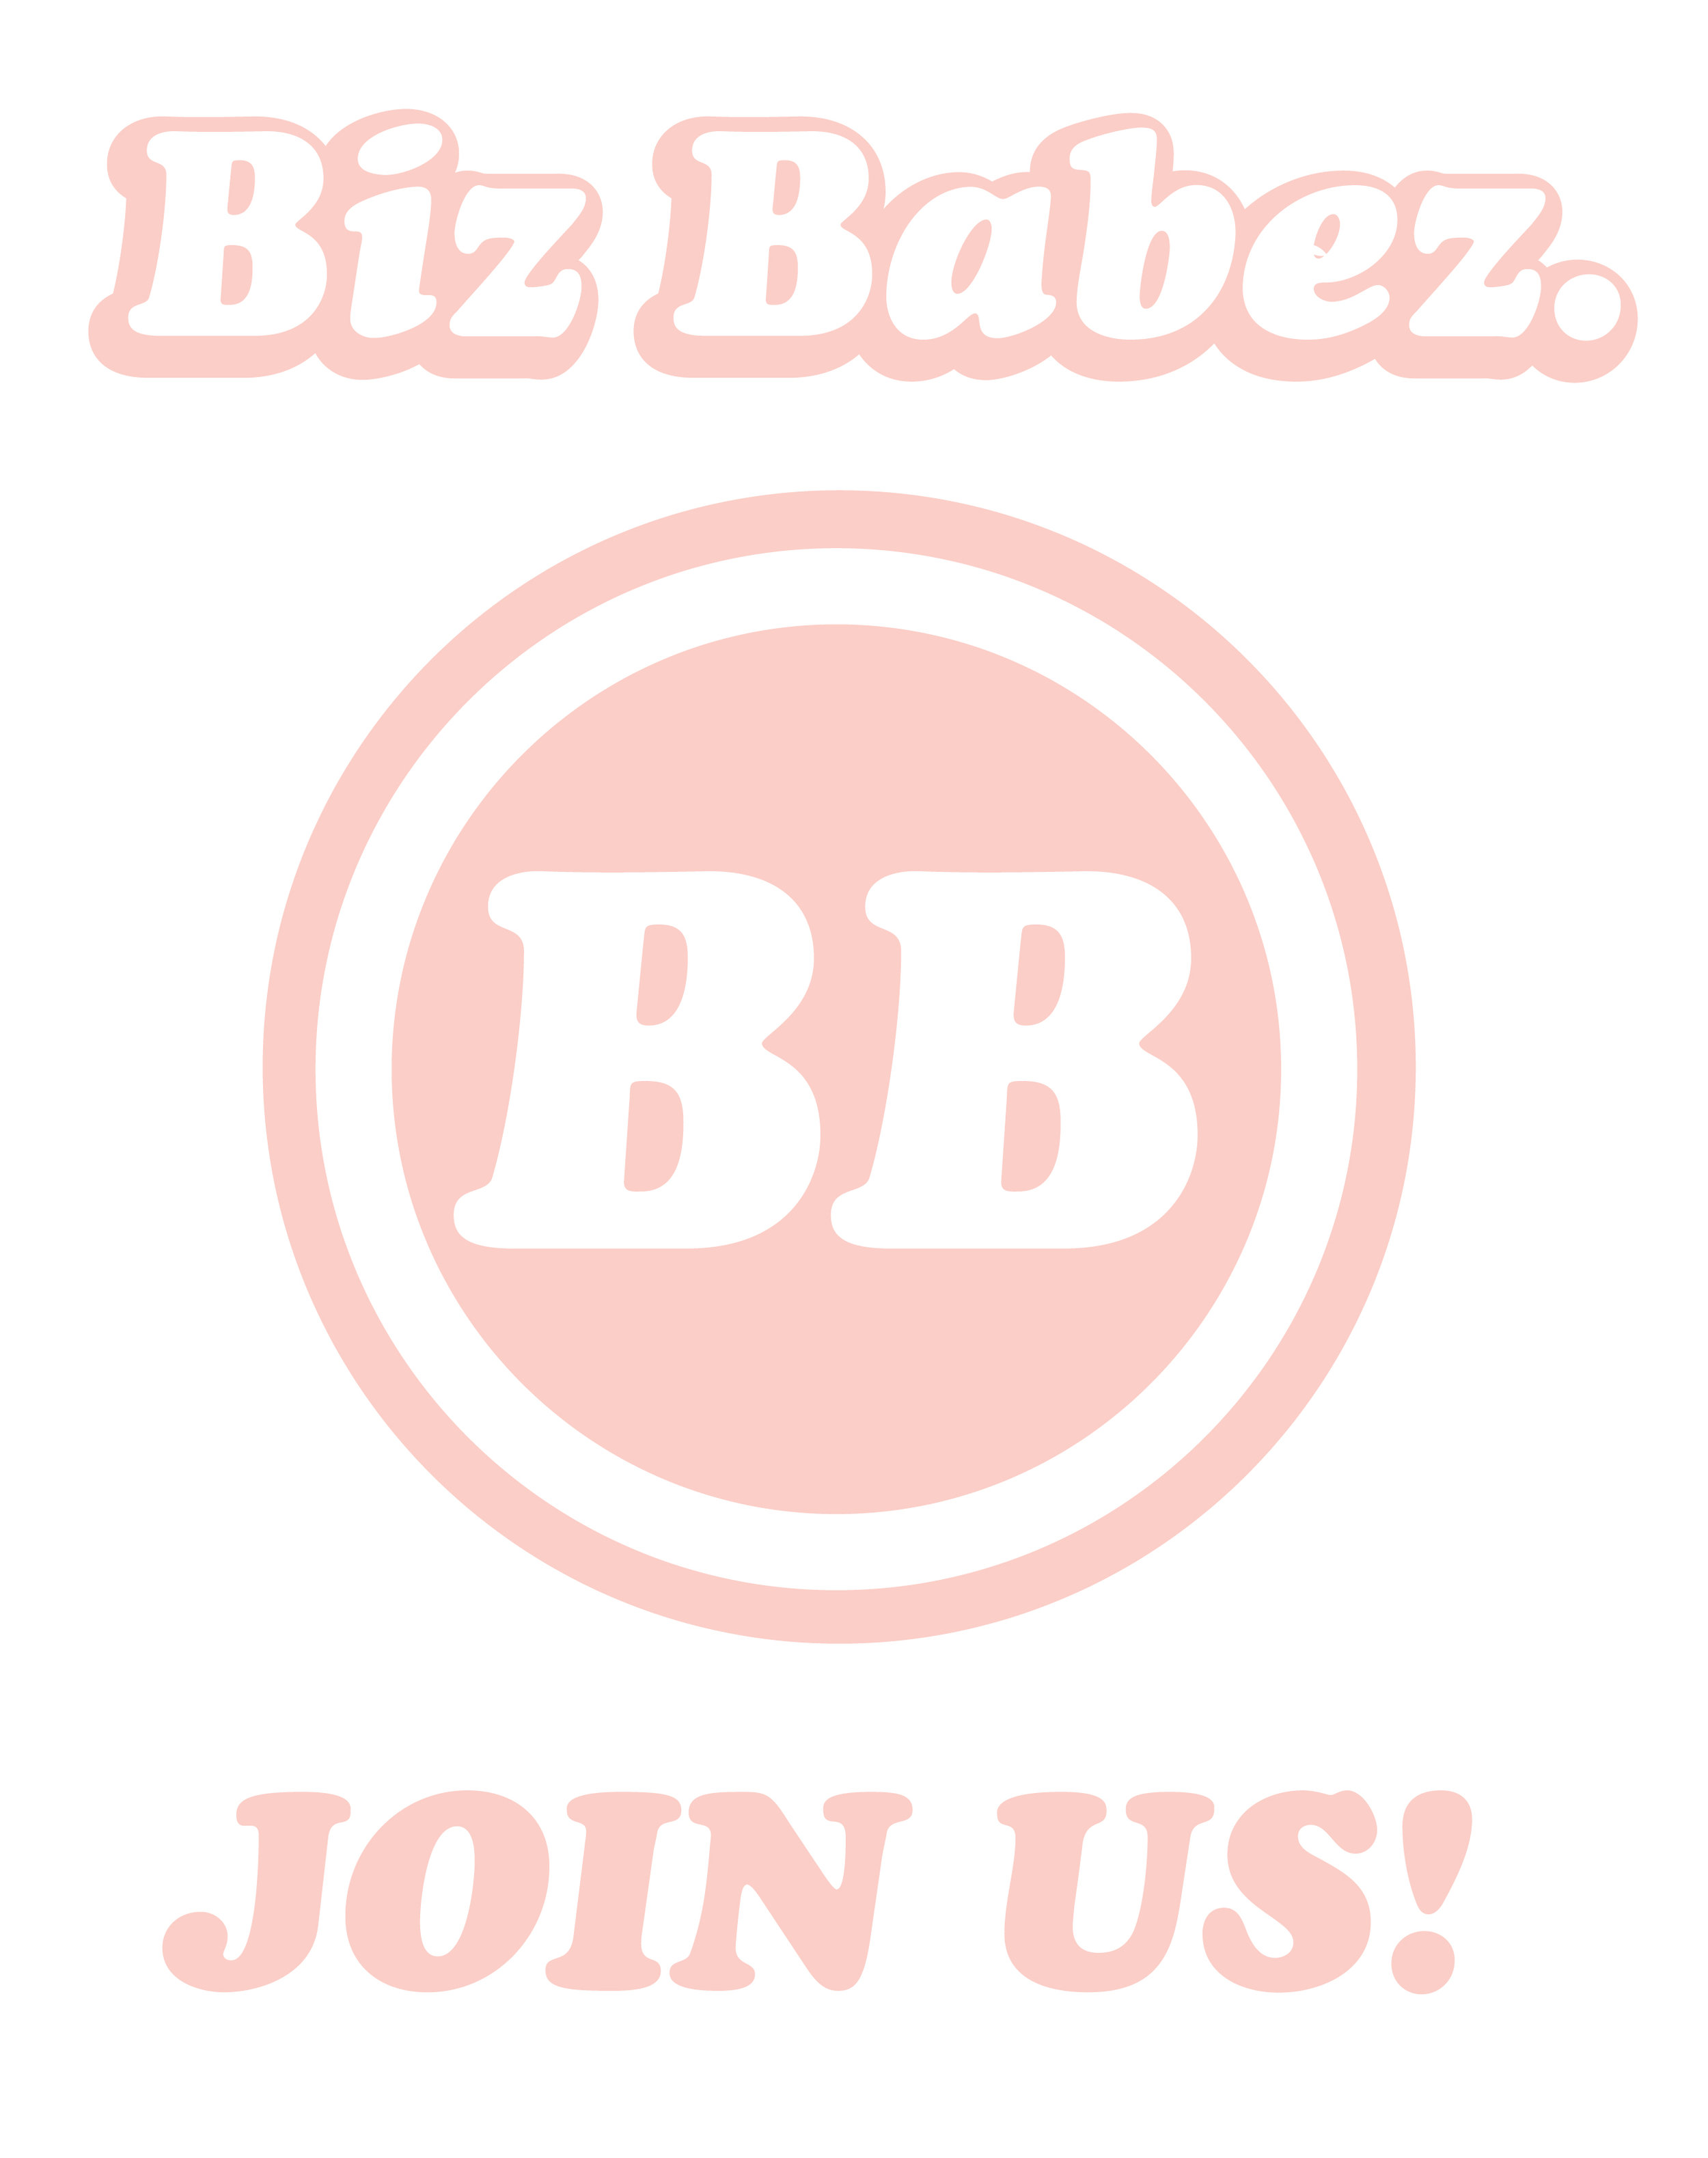 APPLY TODAY! - CLICK HERE to fill out application.For questions email us at bizbabezla@gmail.com